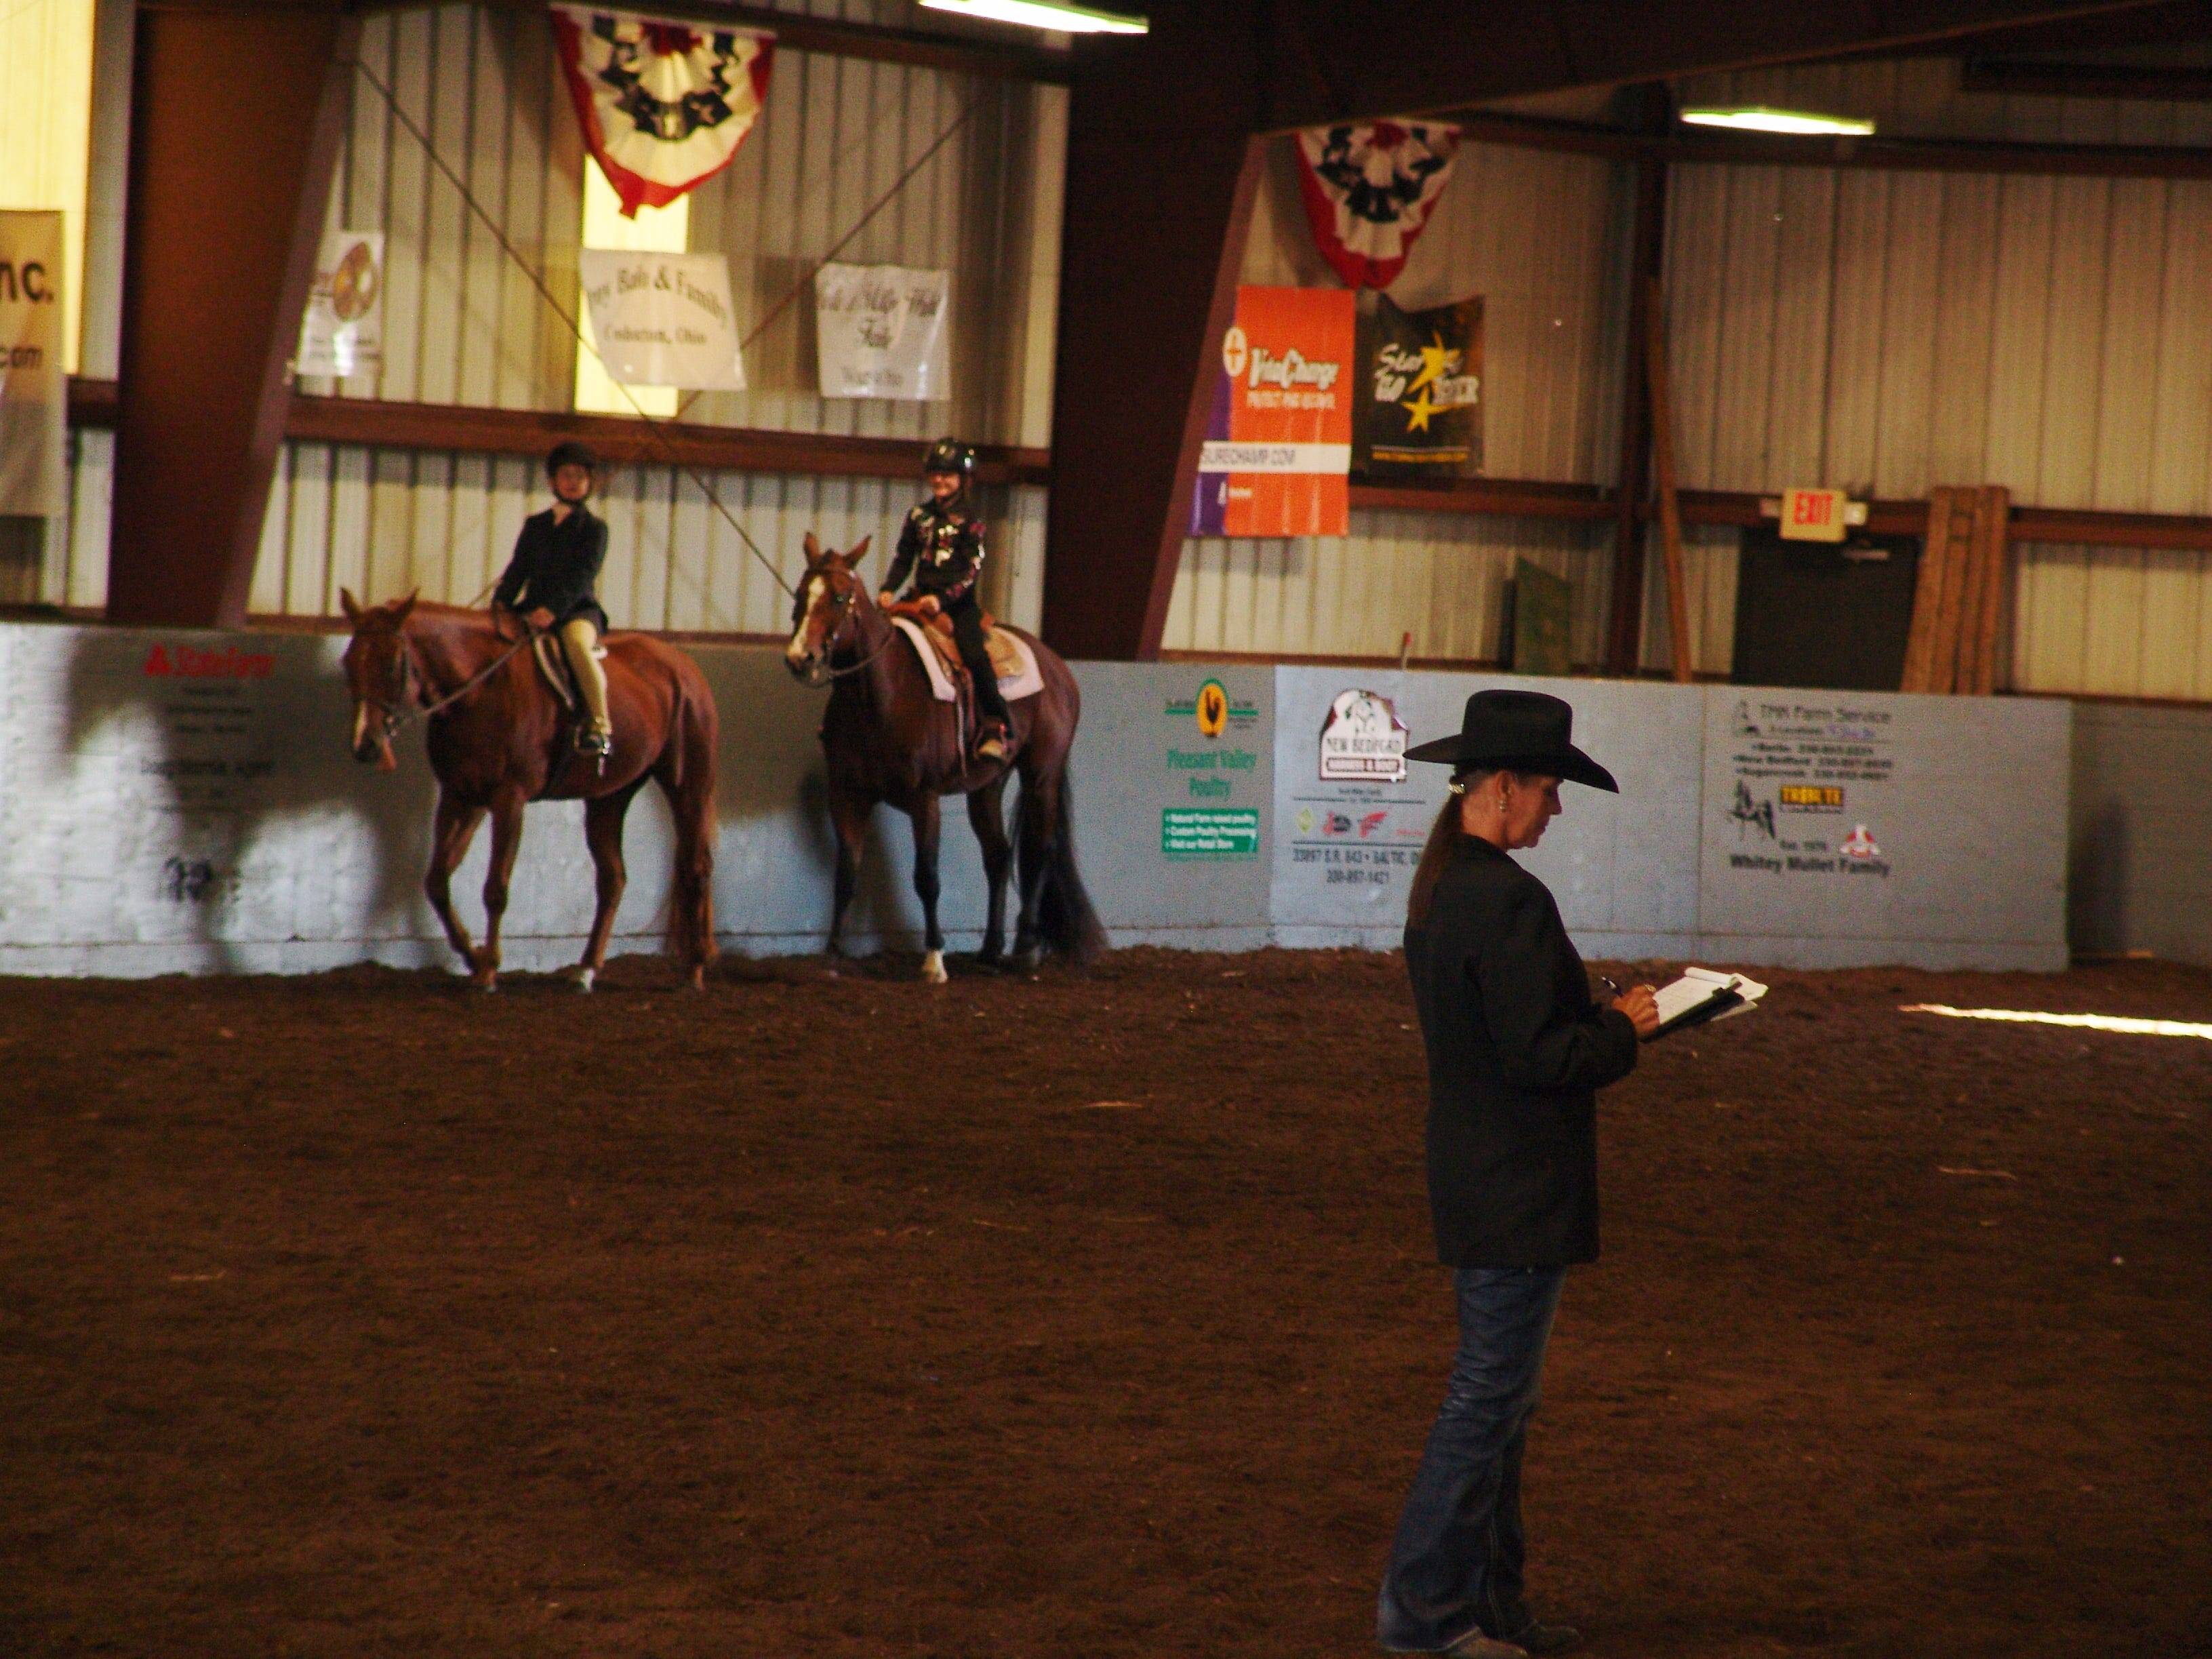 A judge evaluates exhibitors during the walk/trot category of the horse show.